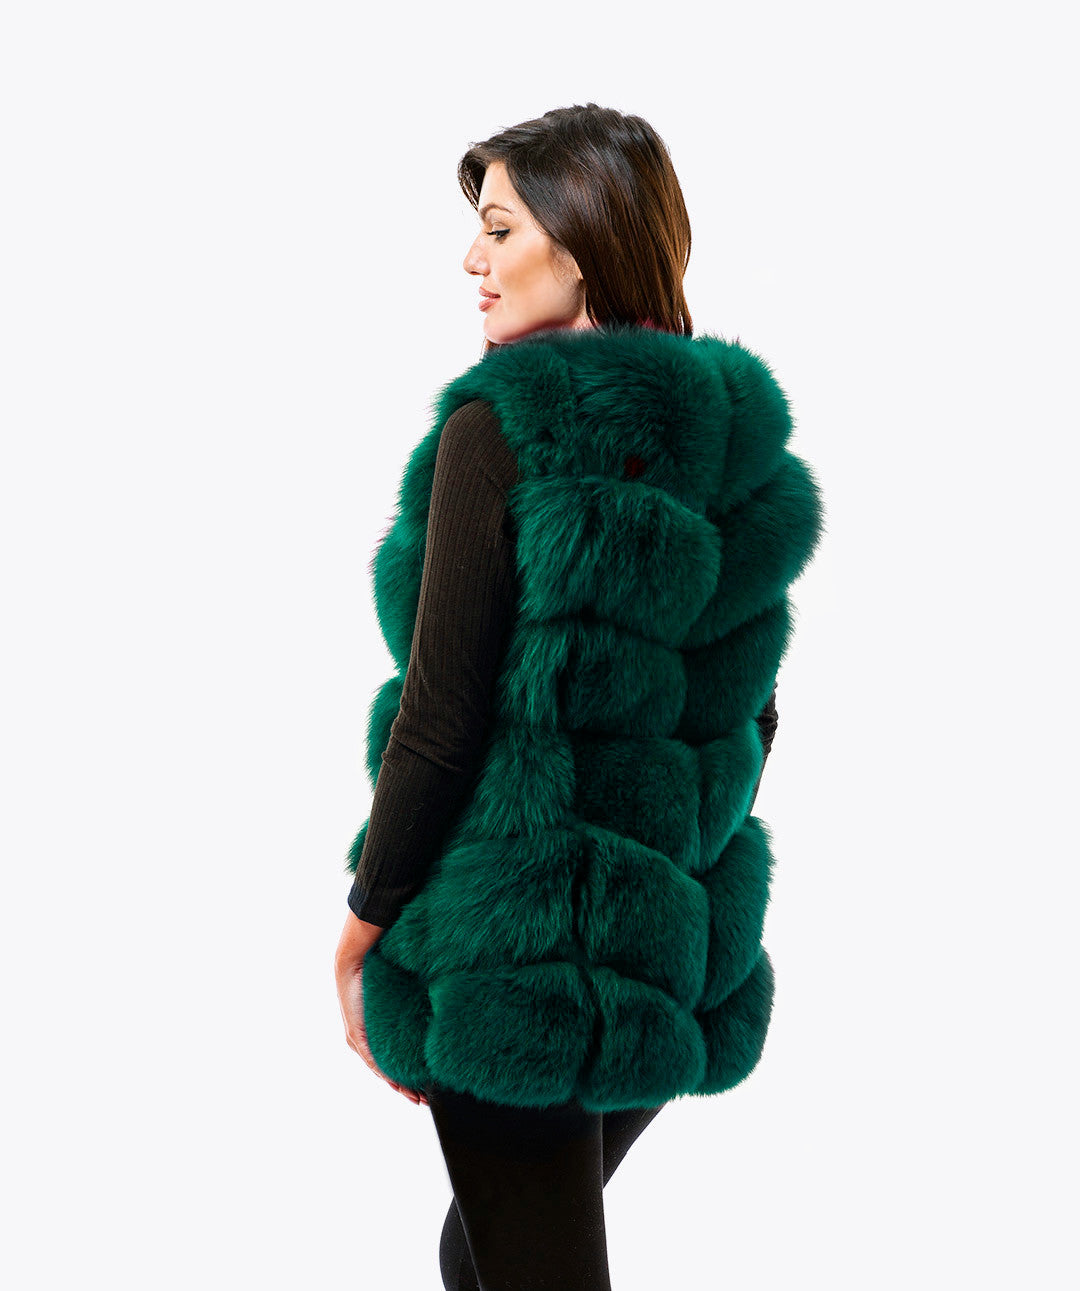 FOX GILET - EMERALD GREEN